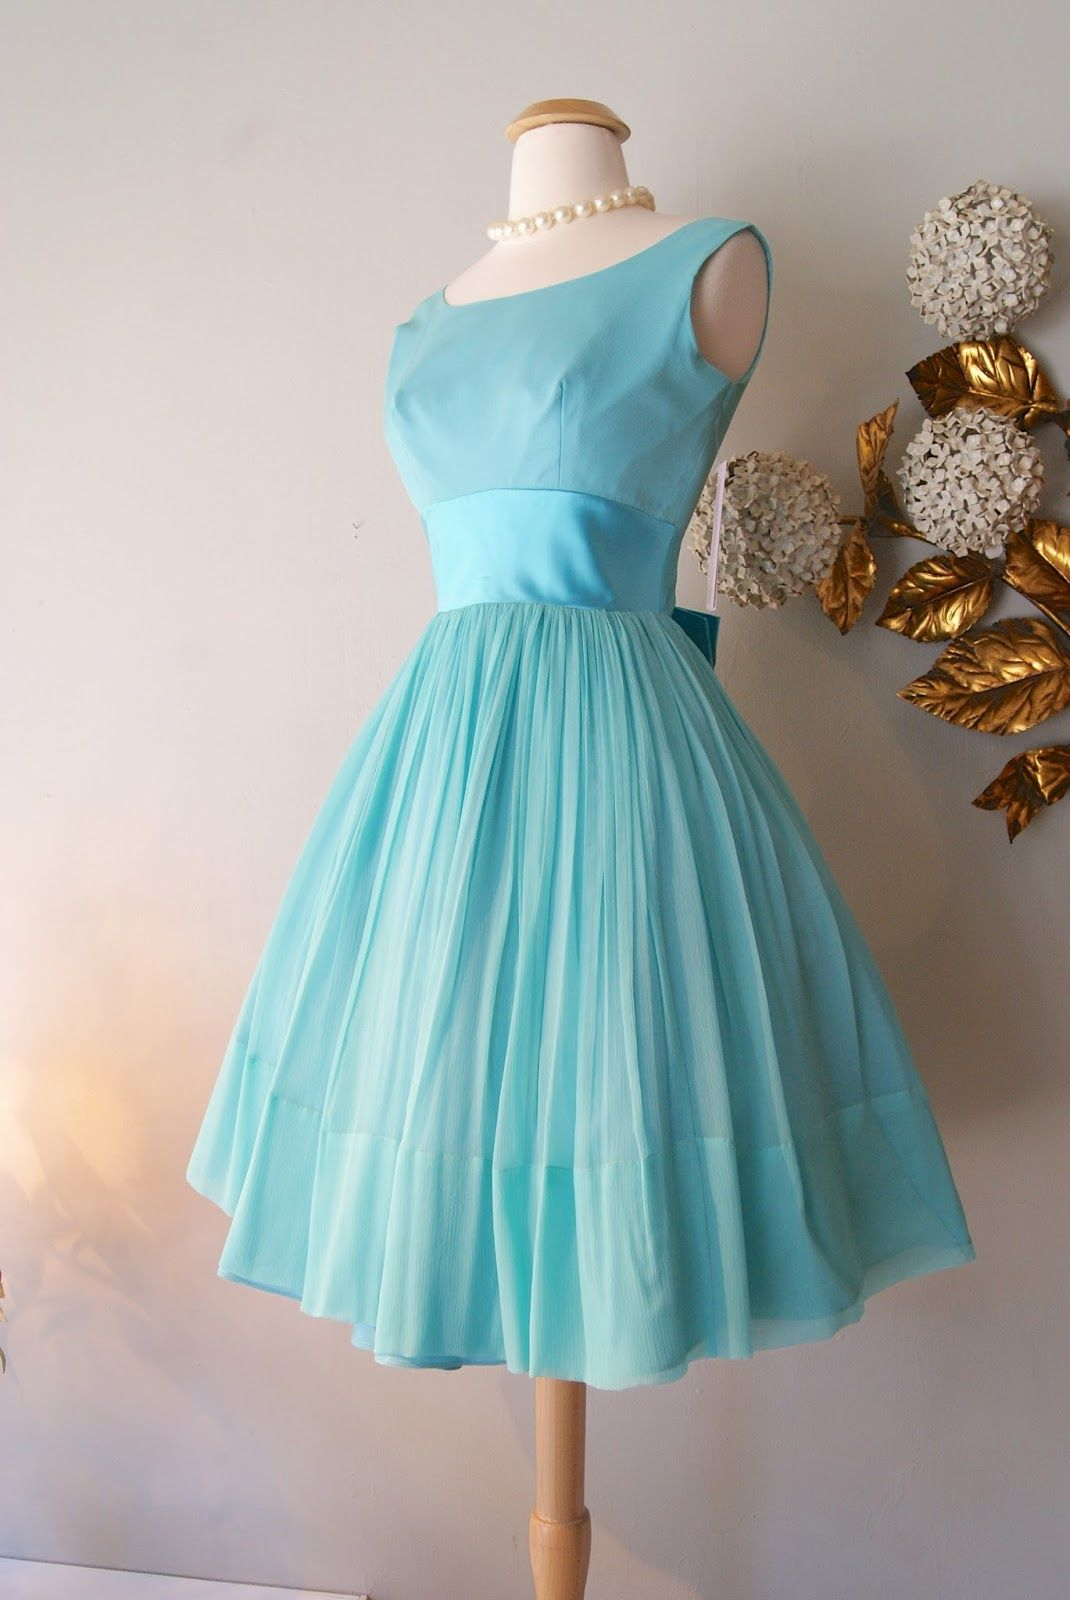 Tiffany blue bridesmaids wedding pinterest tiffany blue tiffany blue bridesmaid dresses for sale xtabay vintage clothing boutique portland oregon recent finds ombrellifo Image collections